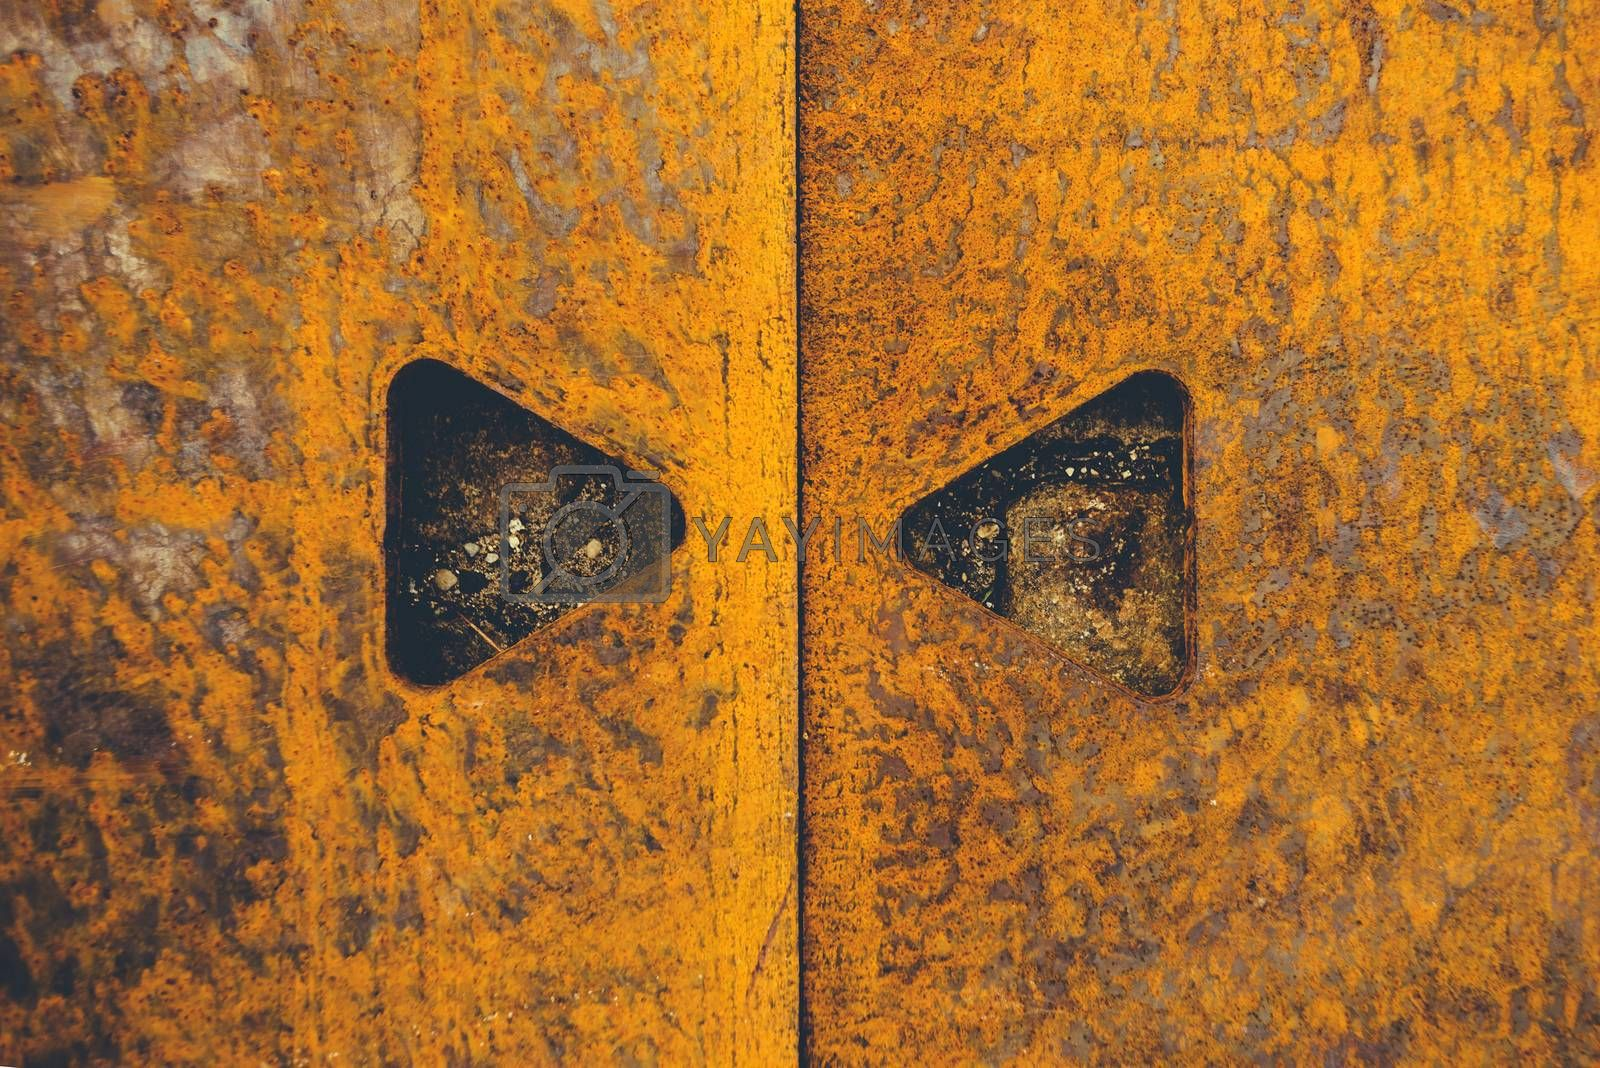 Rusty metal plate texture with triangular shape cut holes